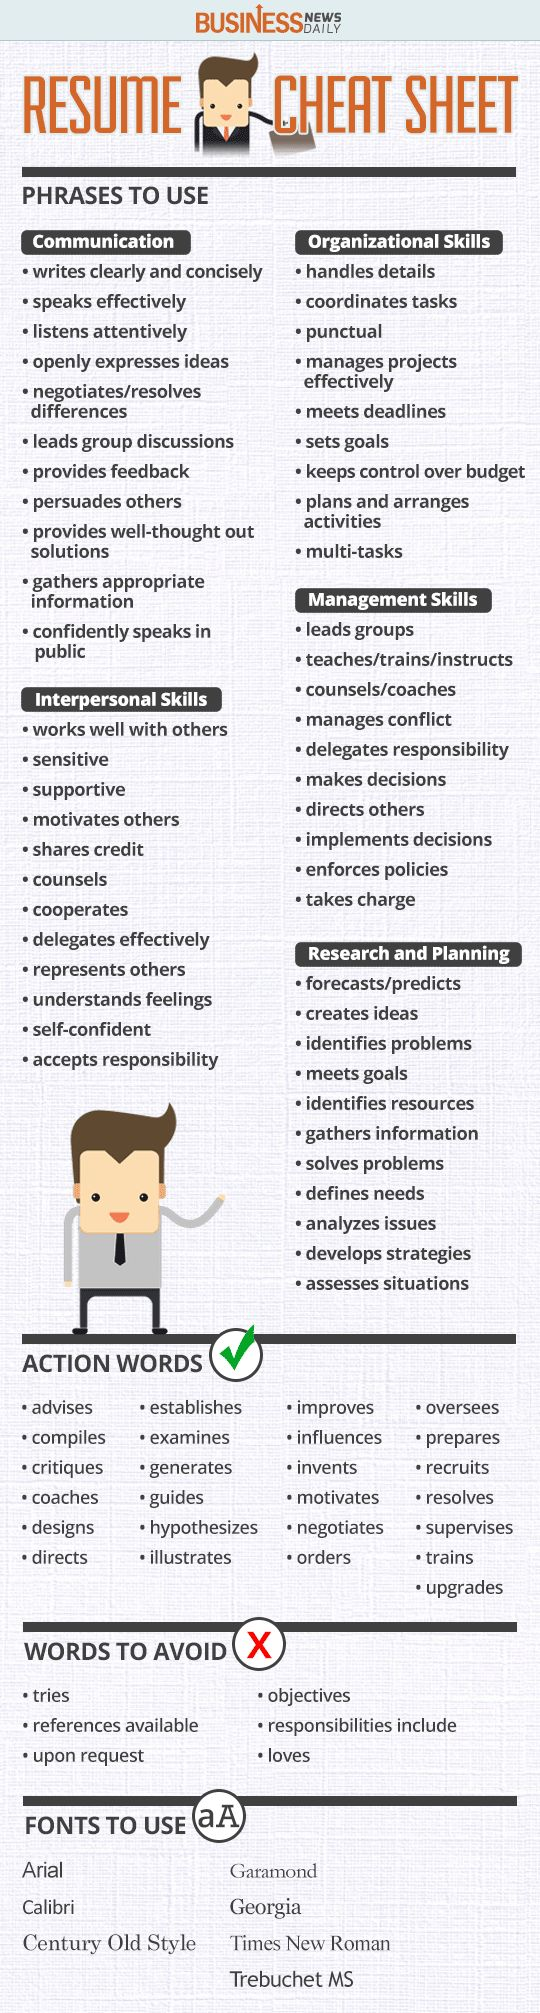 Opposenewapstandardsus  Stunning  Ideas About Resume On Pinterest  Cv Format Resume  With Extraordinary Resume Cheat Sheet Infographic Andrews Almost Done With A Complete Unit On Employment Which With Attractive Resume  Pages Also Proper Spelling Of Resume In Addition Customer Service Experience Resume And Resume For Teacher As Well As Resume For Recent College Graduate Additionally Job Resume Definition From Pinterestcom With Opposenewapstandardsus  Extraordinary  Ideas About Resume On Pinterest  Cv Format Resume  With Attractive Resume Cheat Sheet Infographic Andrews Almost Done With A Complete Unit On Employment Which And Stunning Resume  Pages Also Proper Spelling Of Resume In Addition Customer Service Experience Resume From Pinterestcom